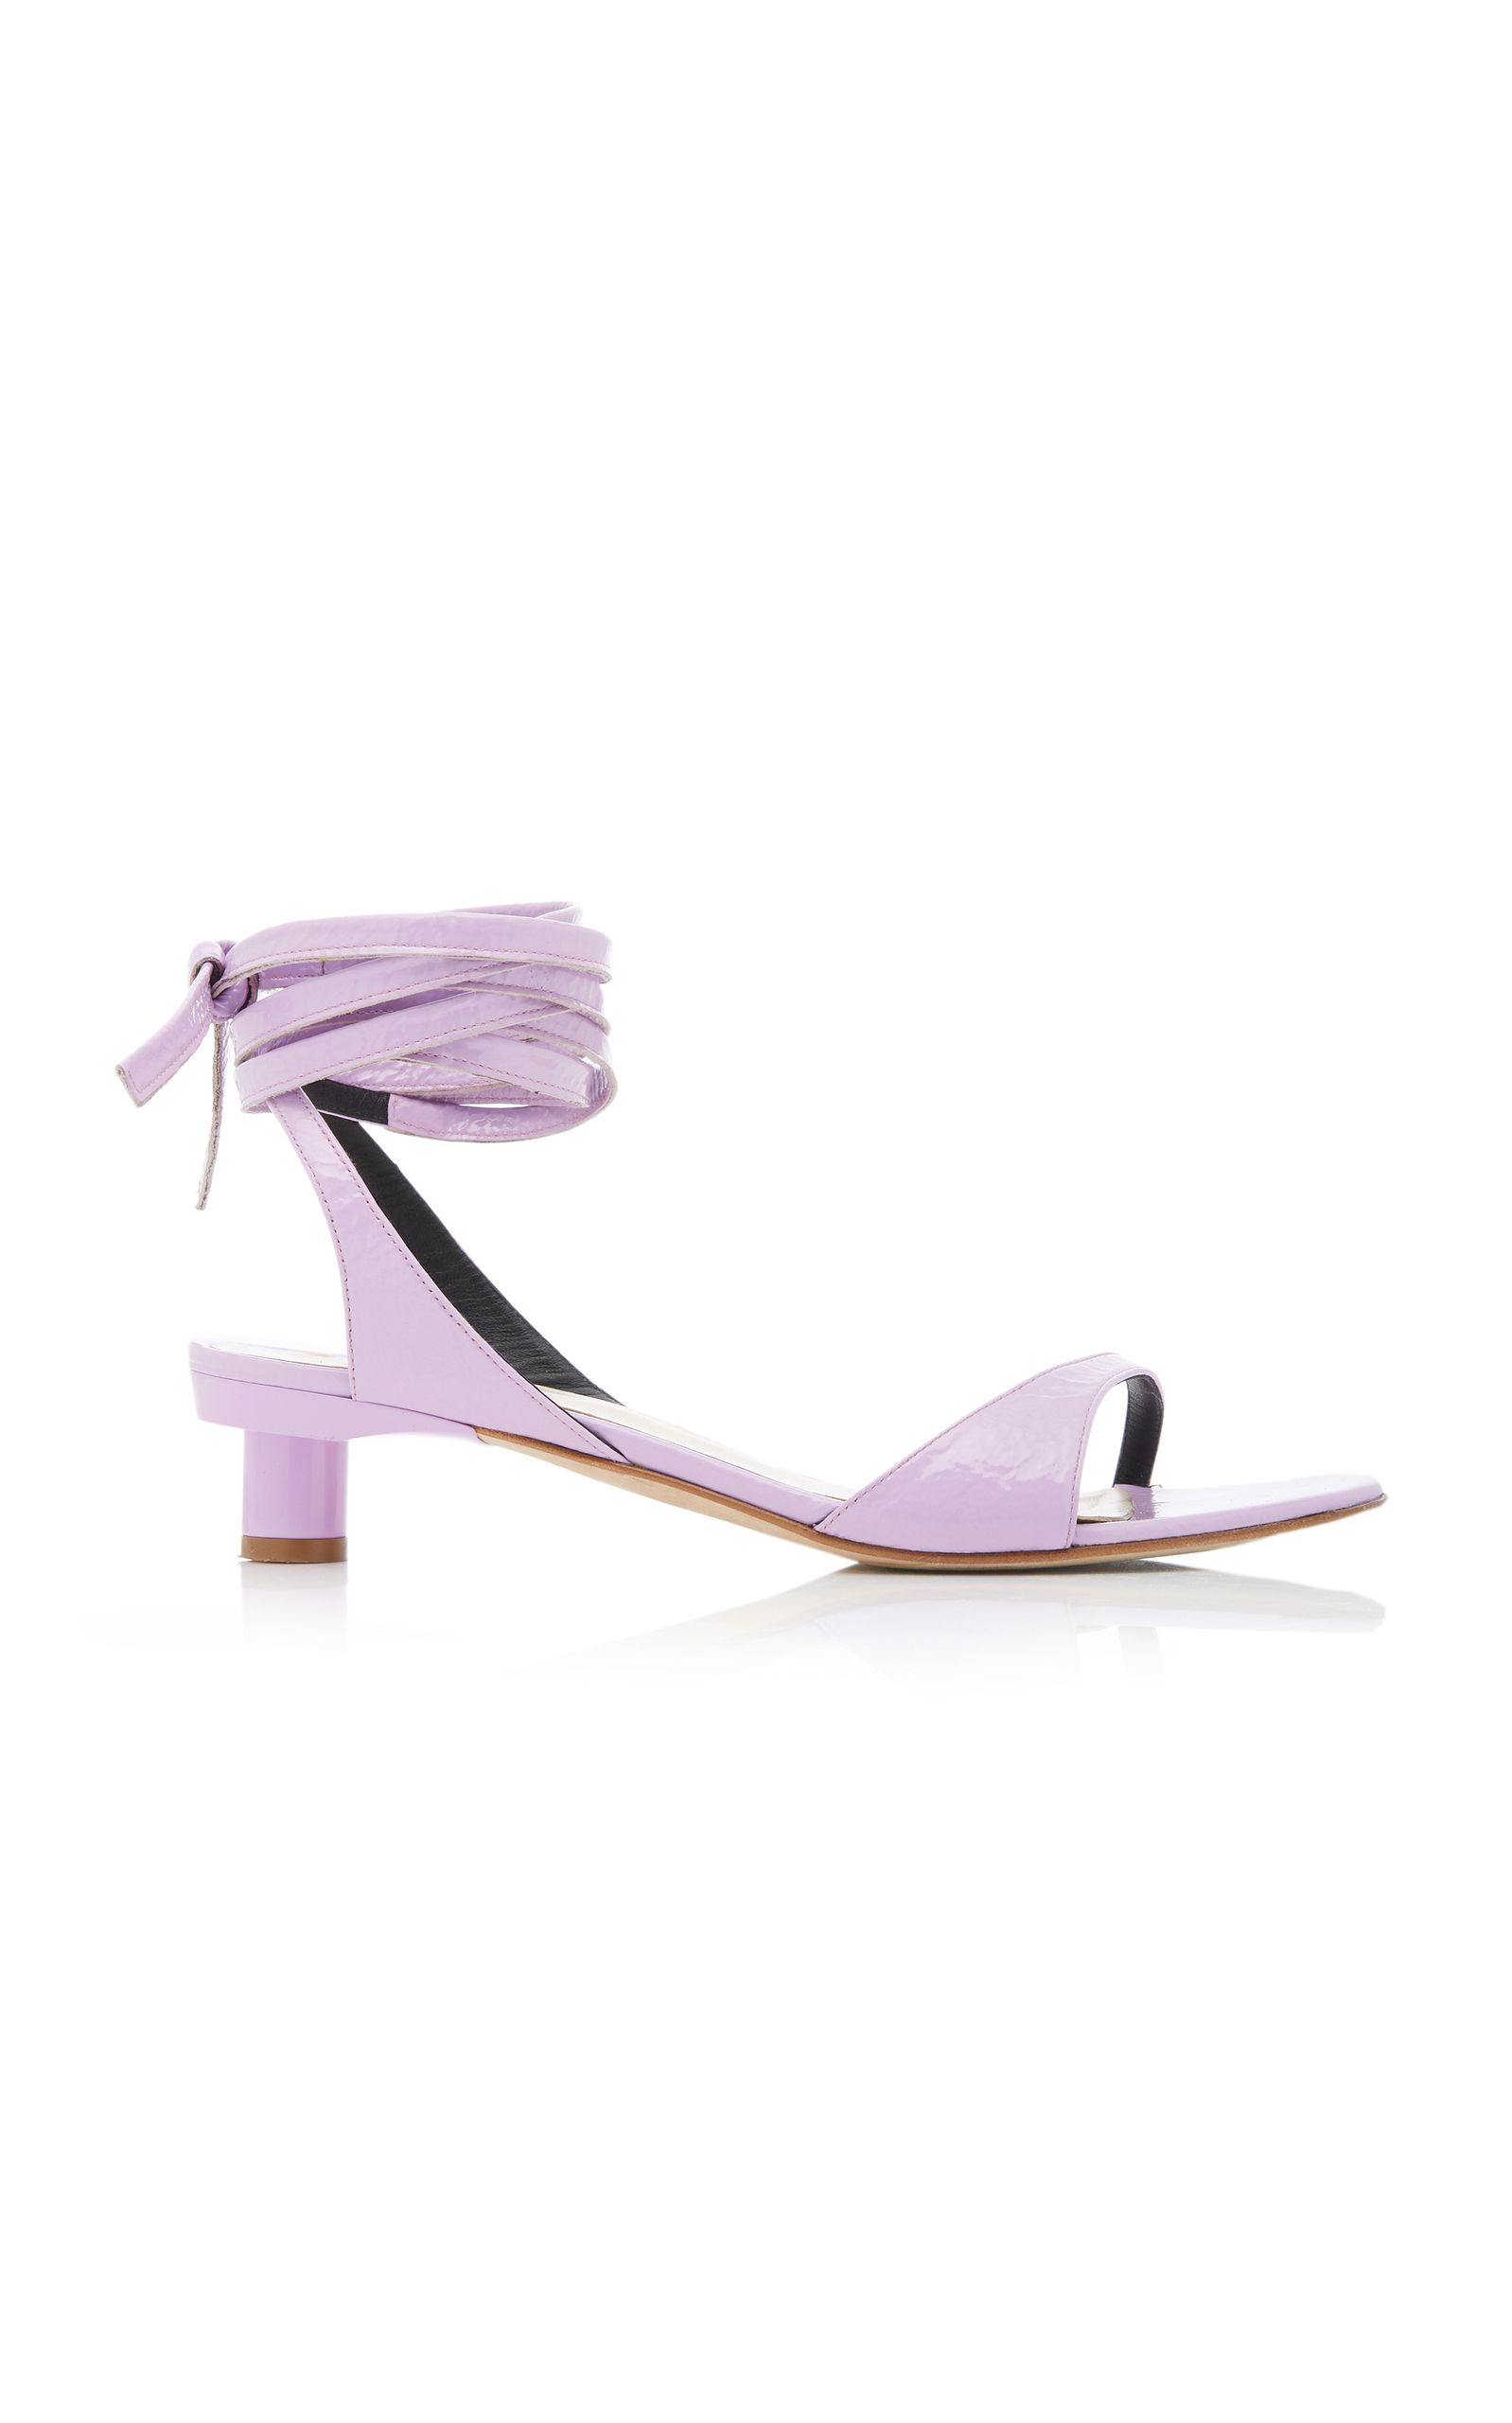 411767401 Scott Patent Leather Sandal by TIBI for Preorder on Moda Operandi